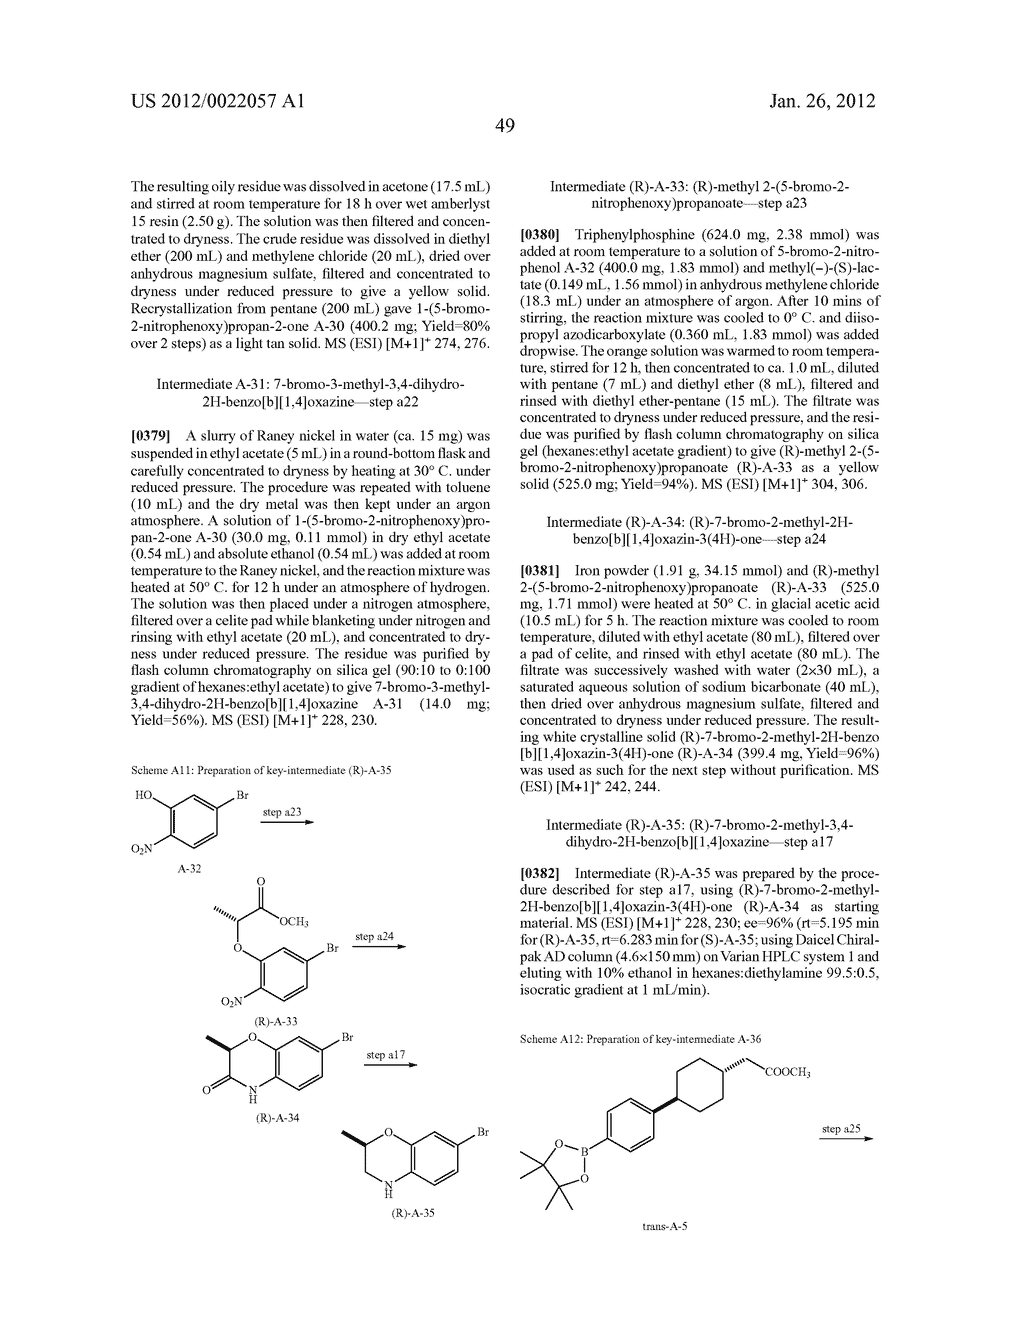 BICYCLIC COMPOUNDS AS INHIBITORS OF DIACYGLYCEROL ACYLTRANSFERASE - diagram, schematic, and image 50